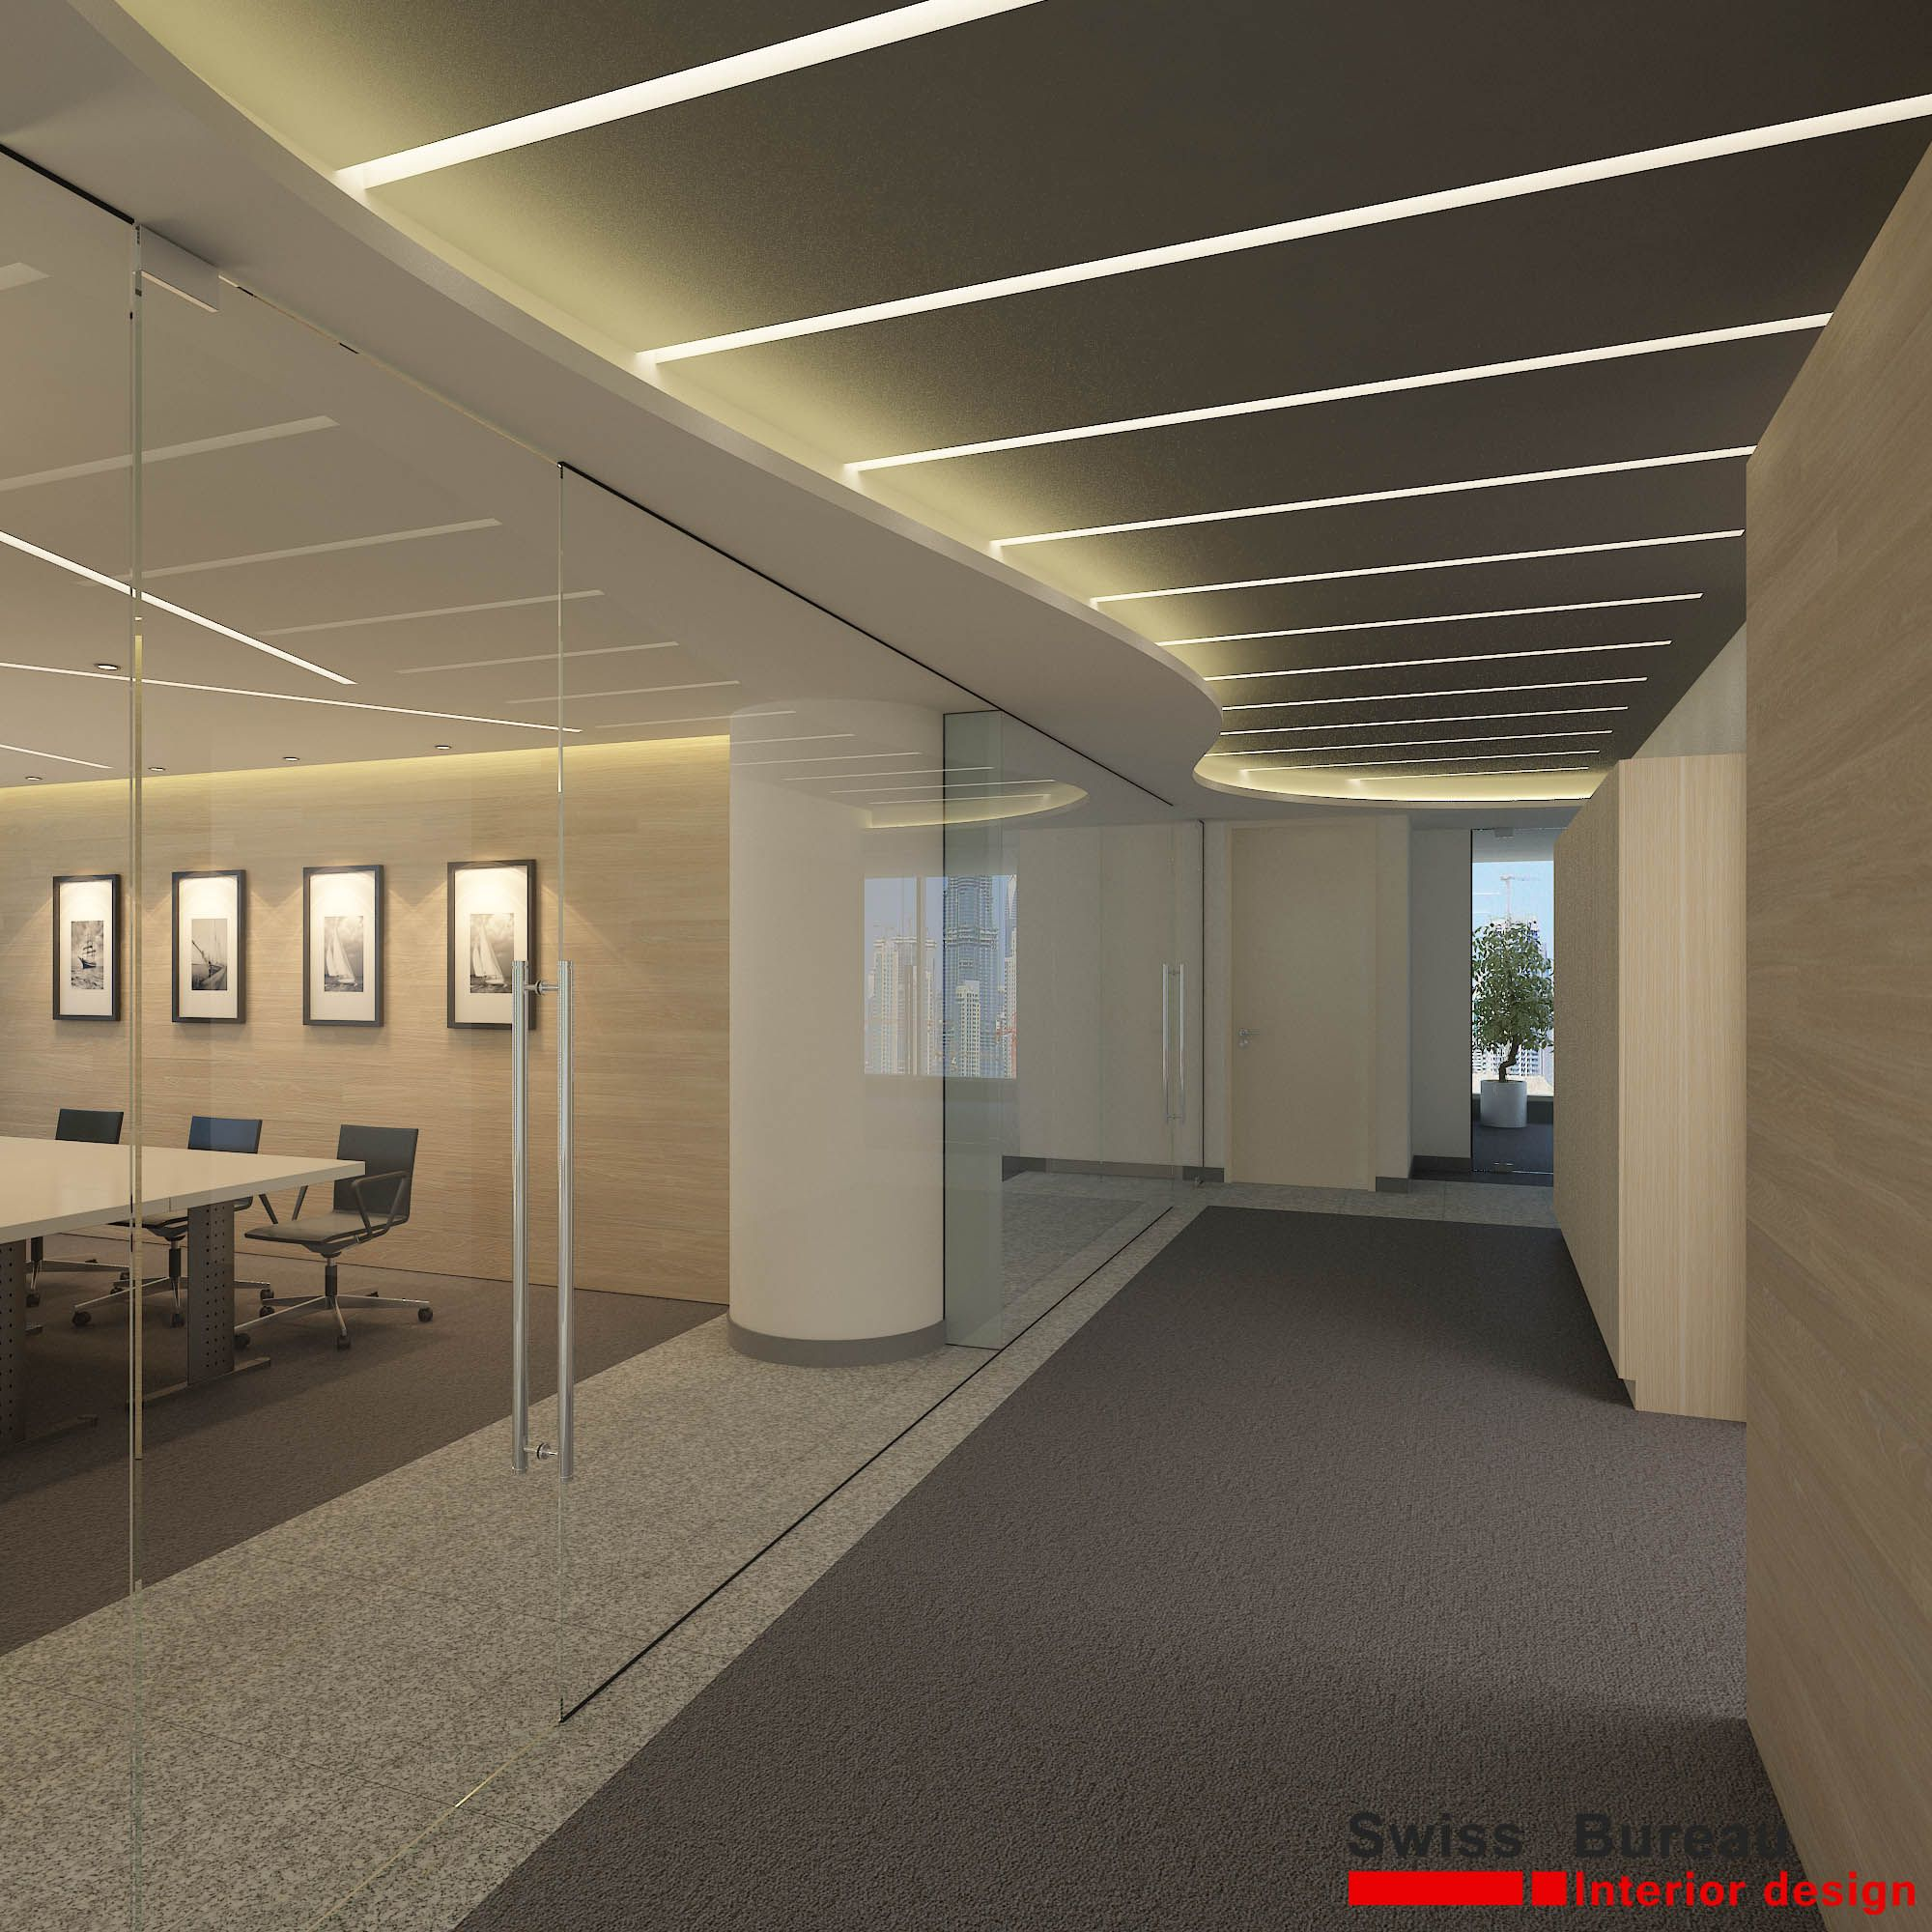 Design Bureau Llc Corporate Office Corridor Design By Swiss Bureau Interior